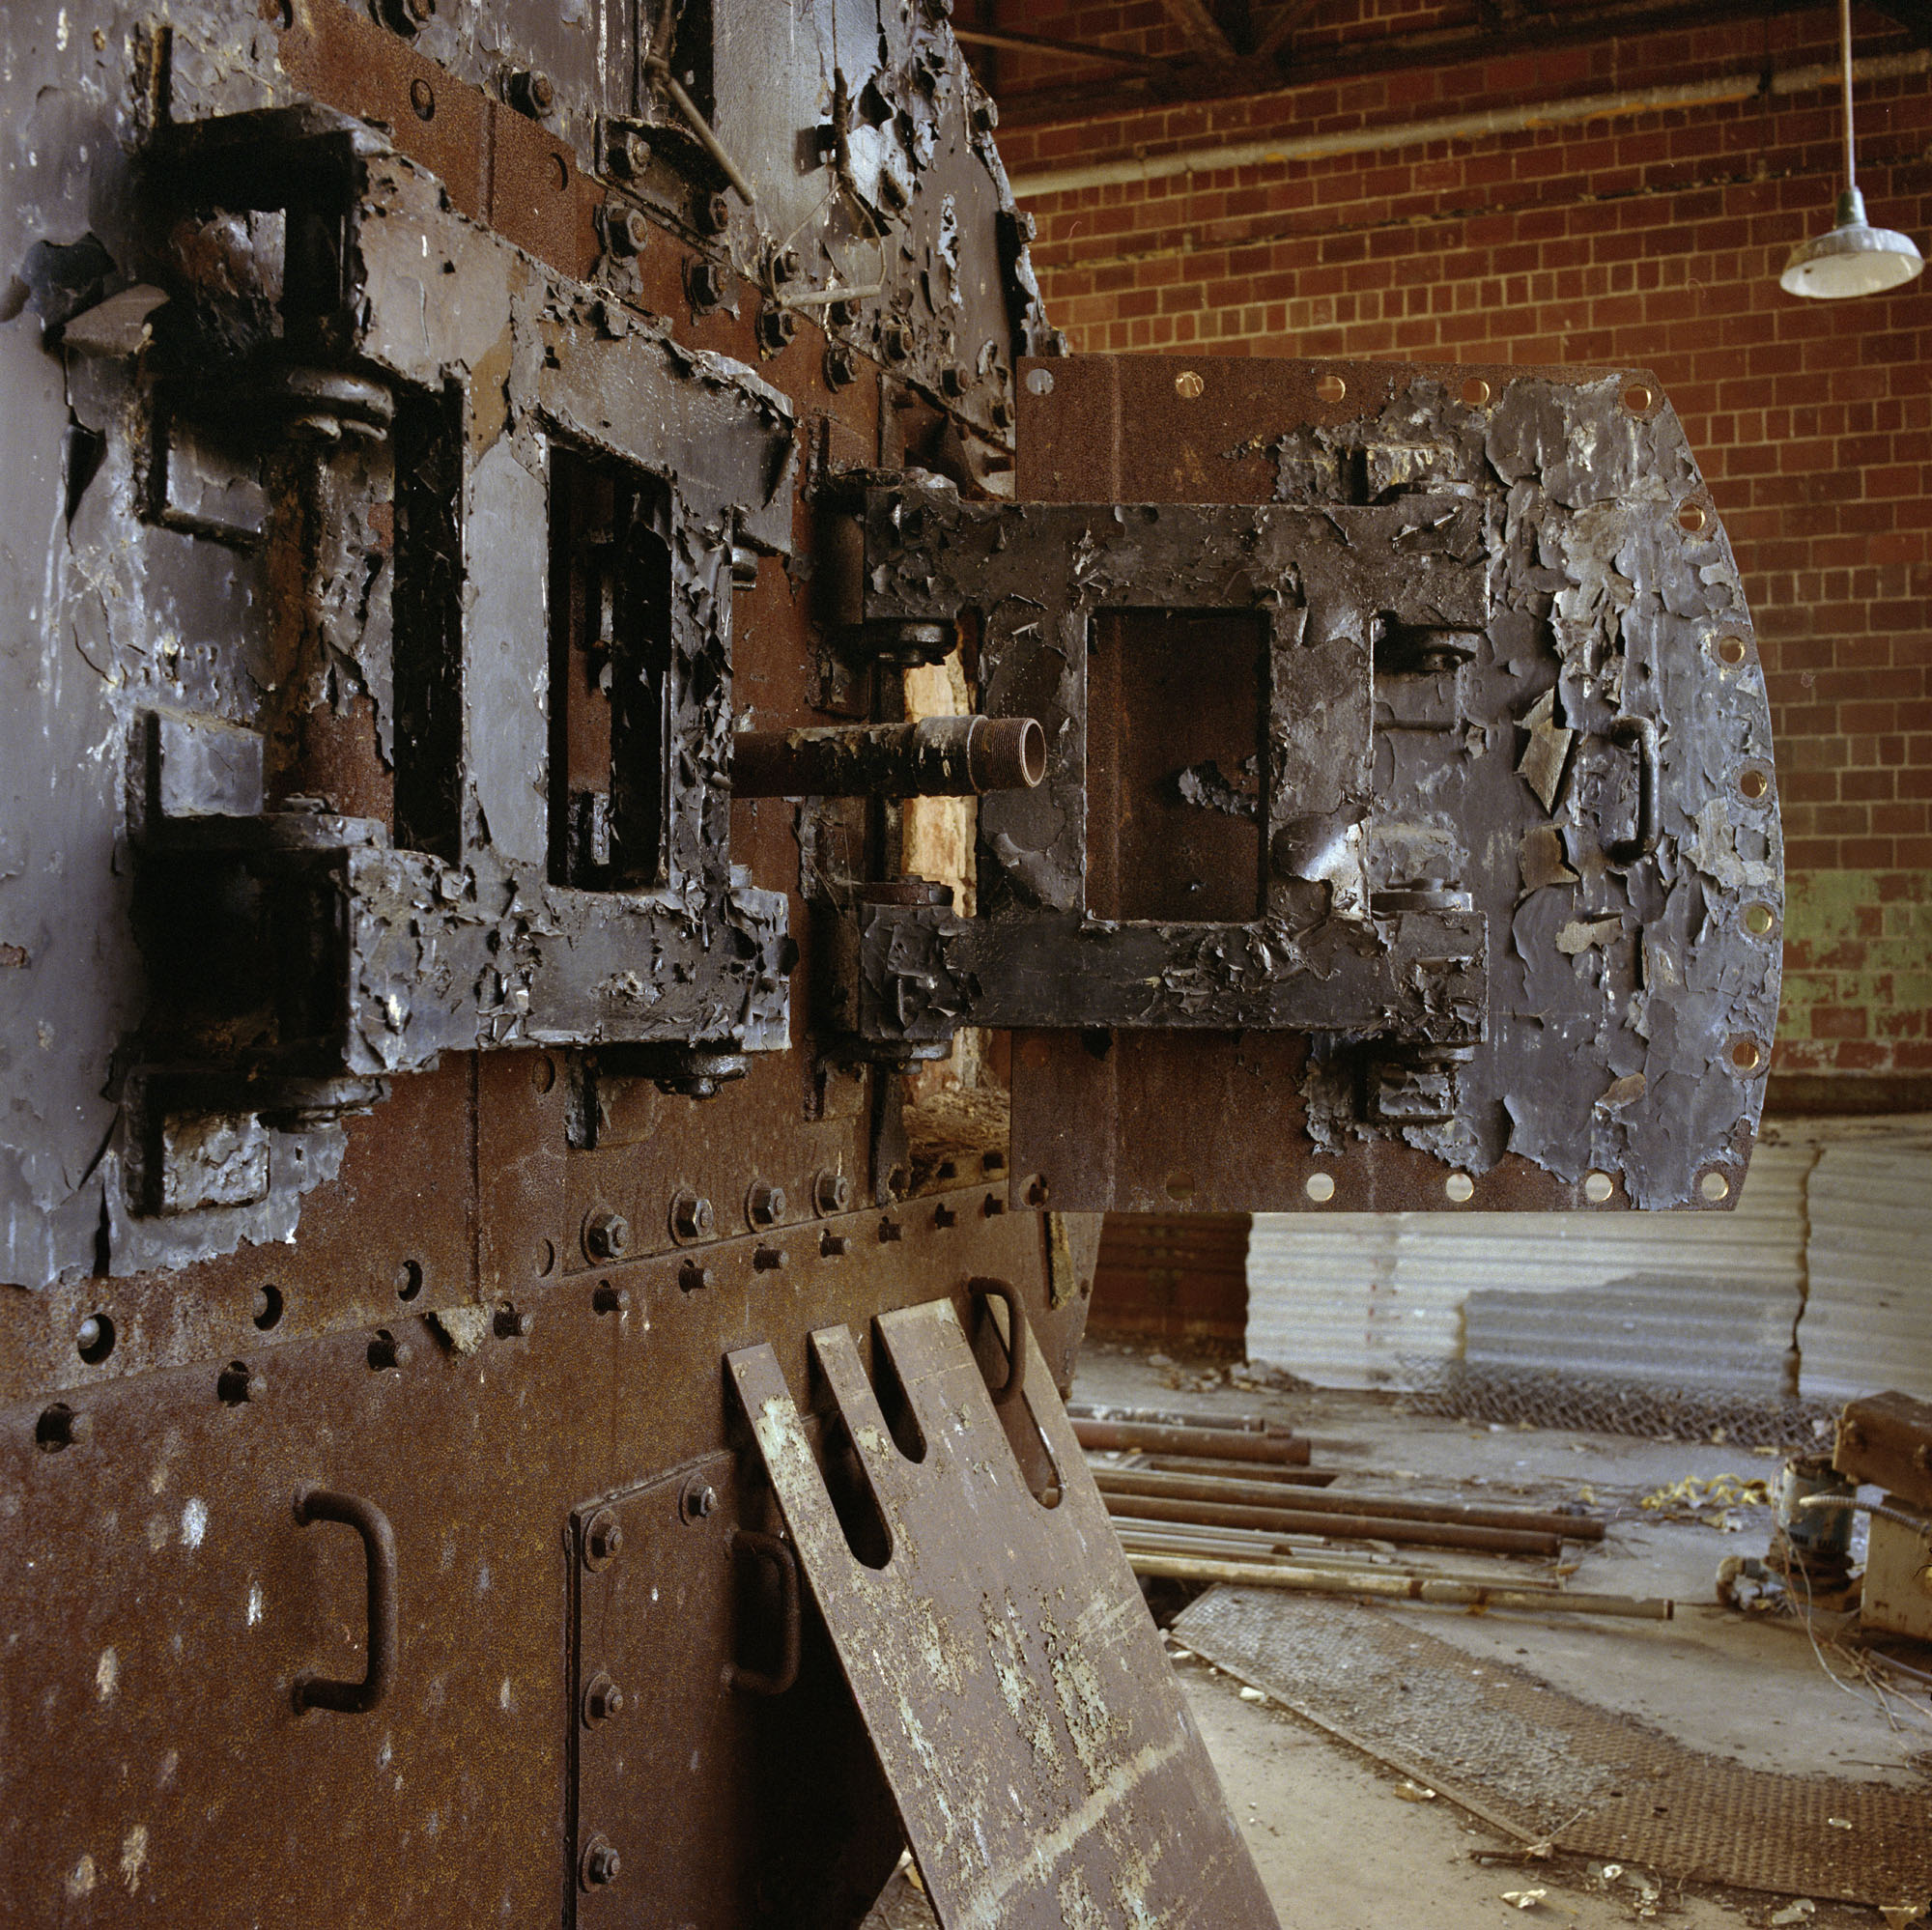 Furnace building, with light, October 10, 1996